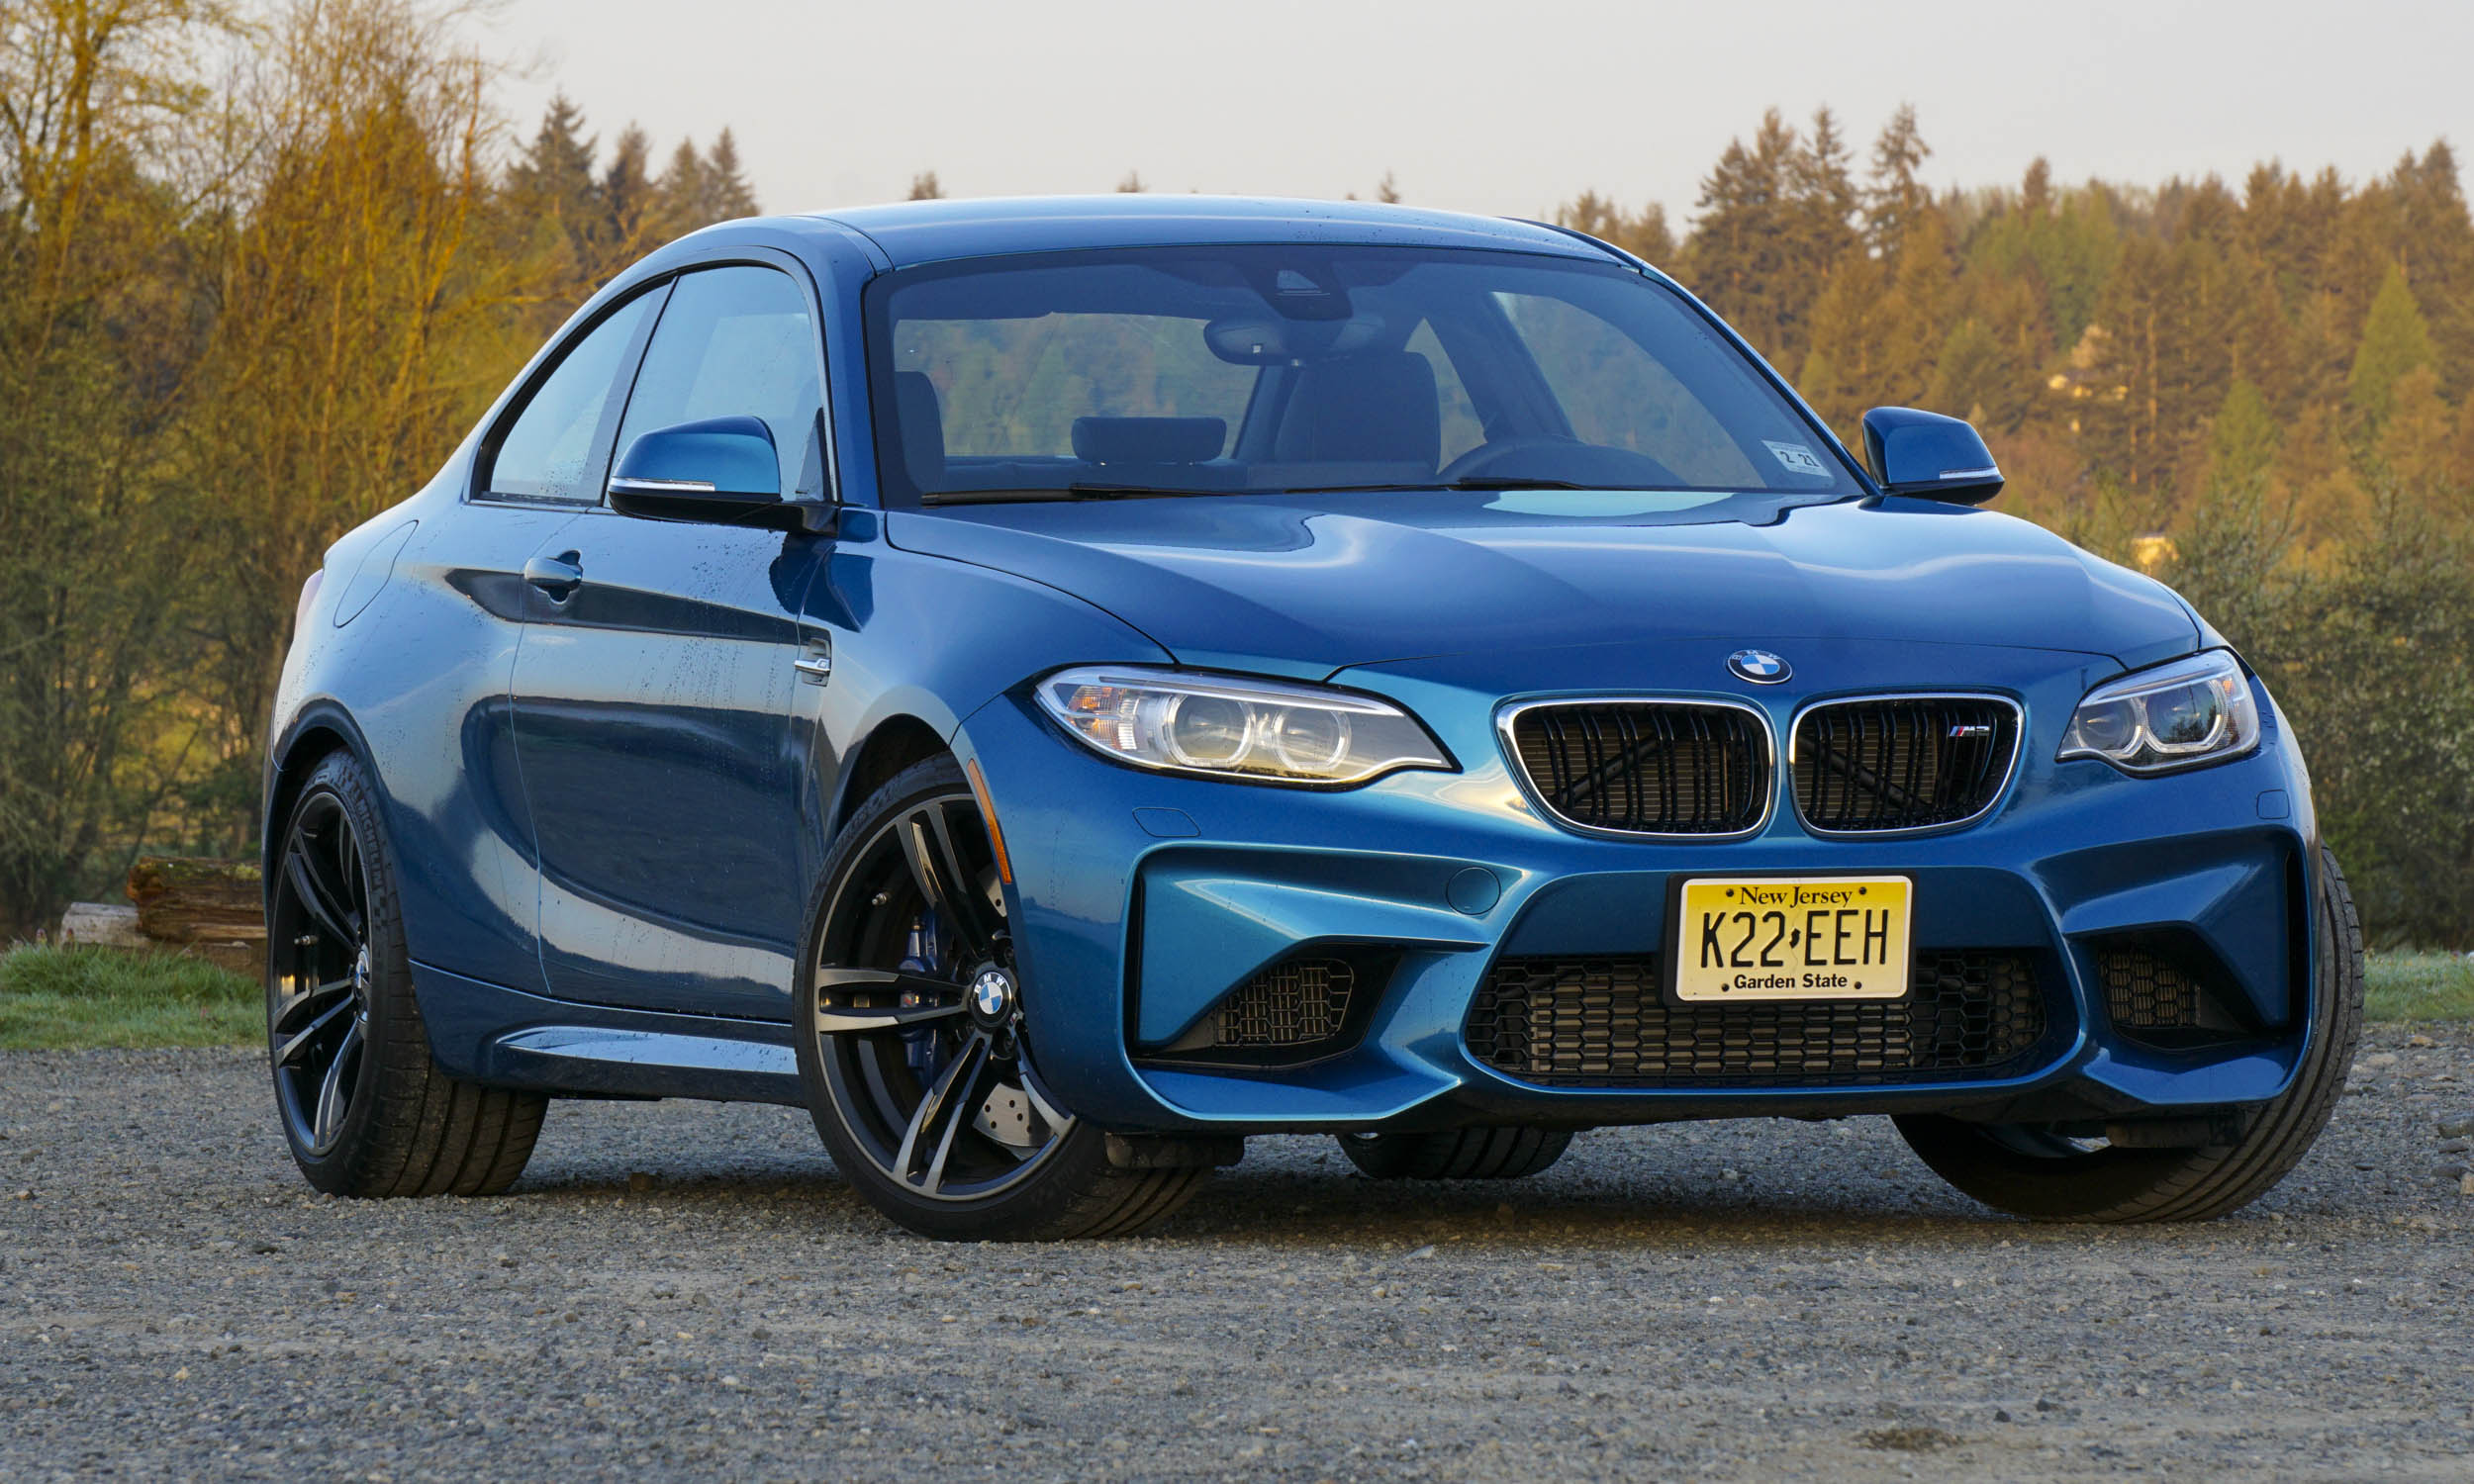 New Vehicle Security Research by KeenLab: Experimental Security Assessment of BMW Cars